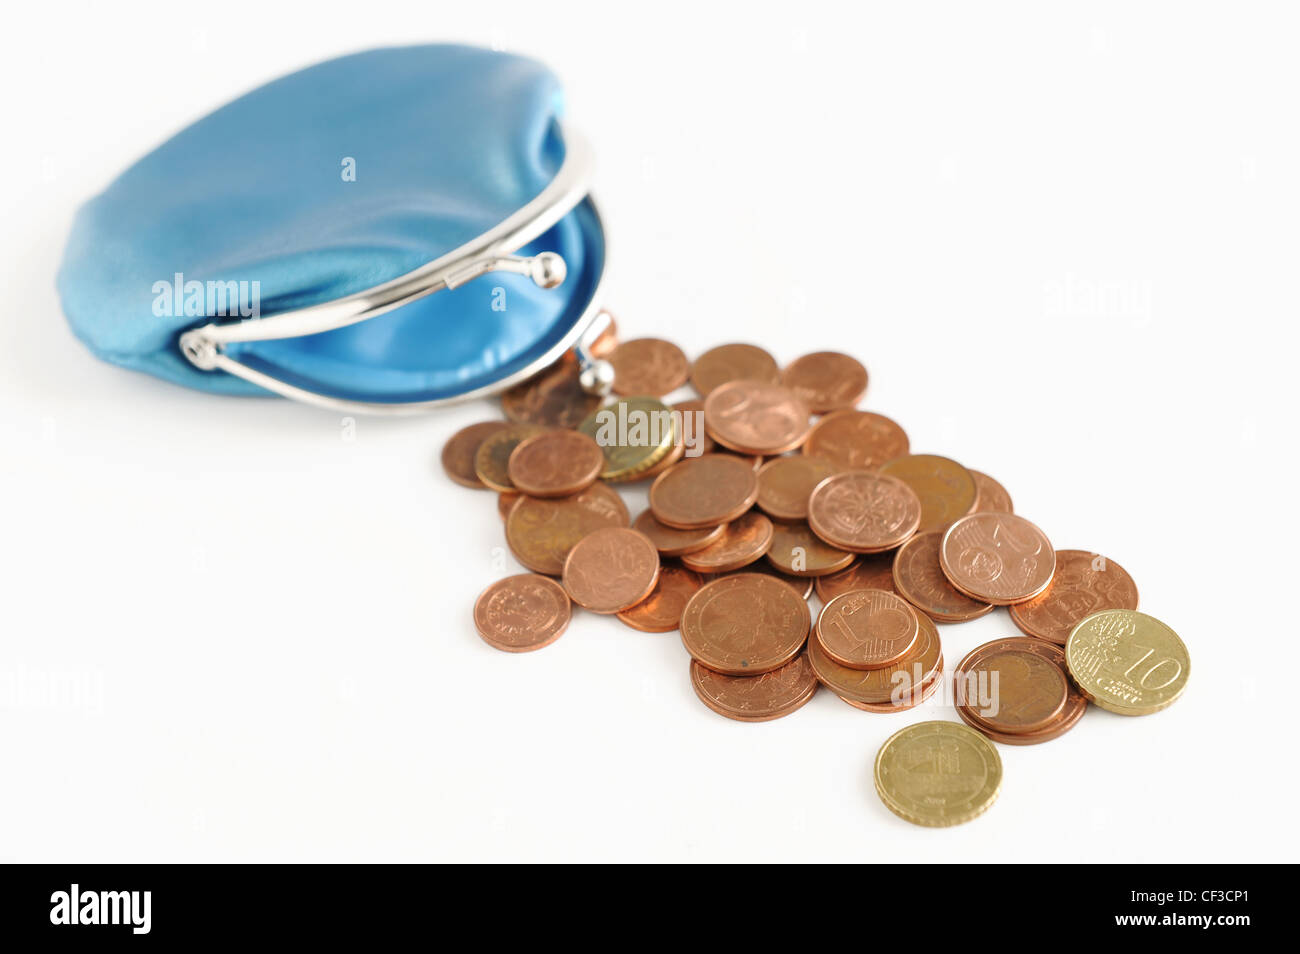 A still life image of Euro cent coins scattered on the white table with a blue coin purse in the corner Stock Photo